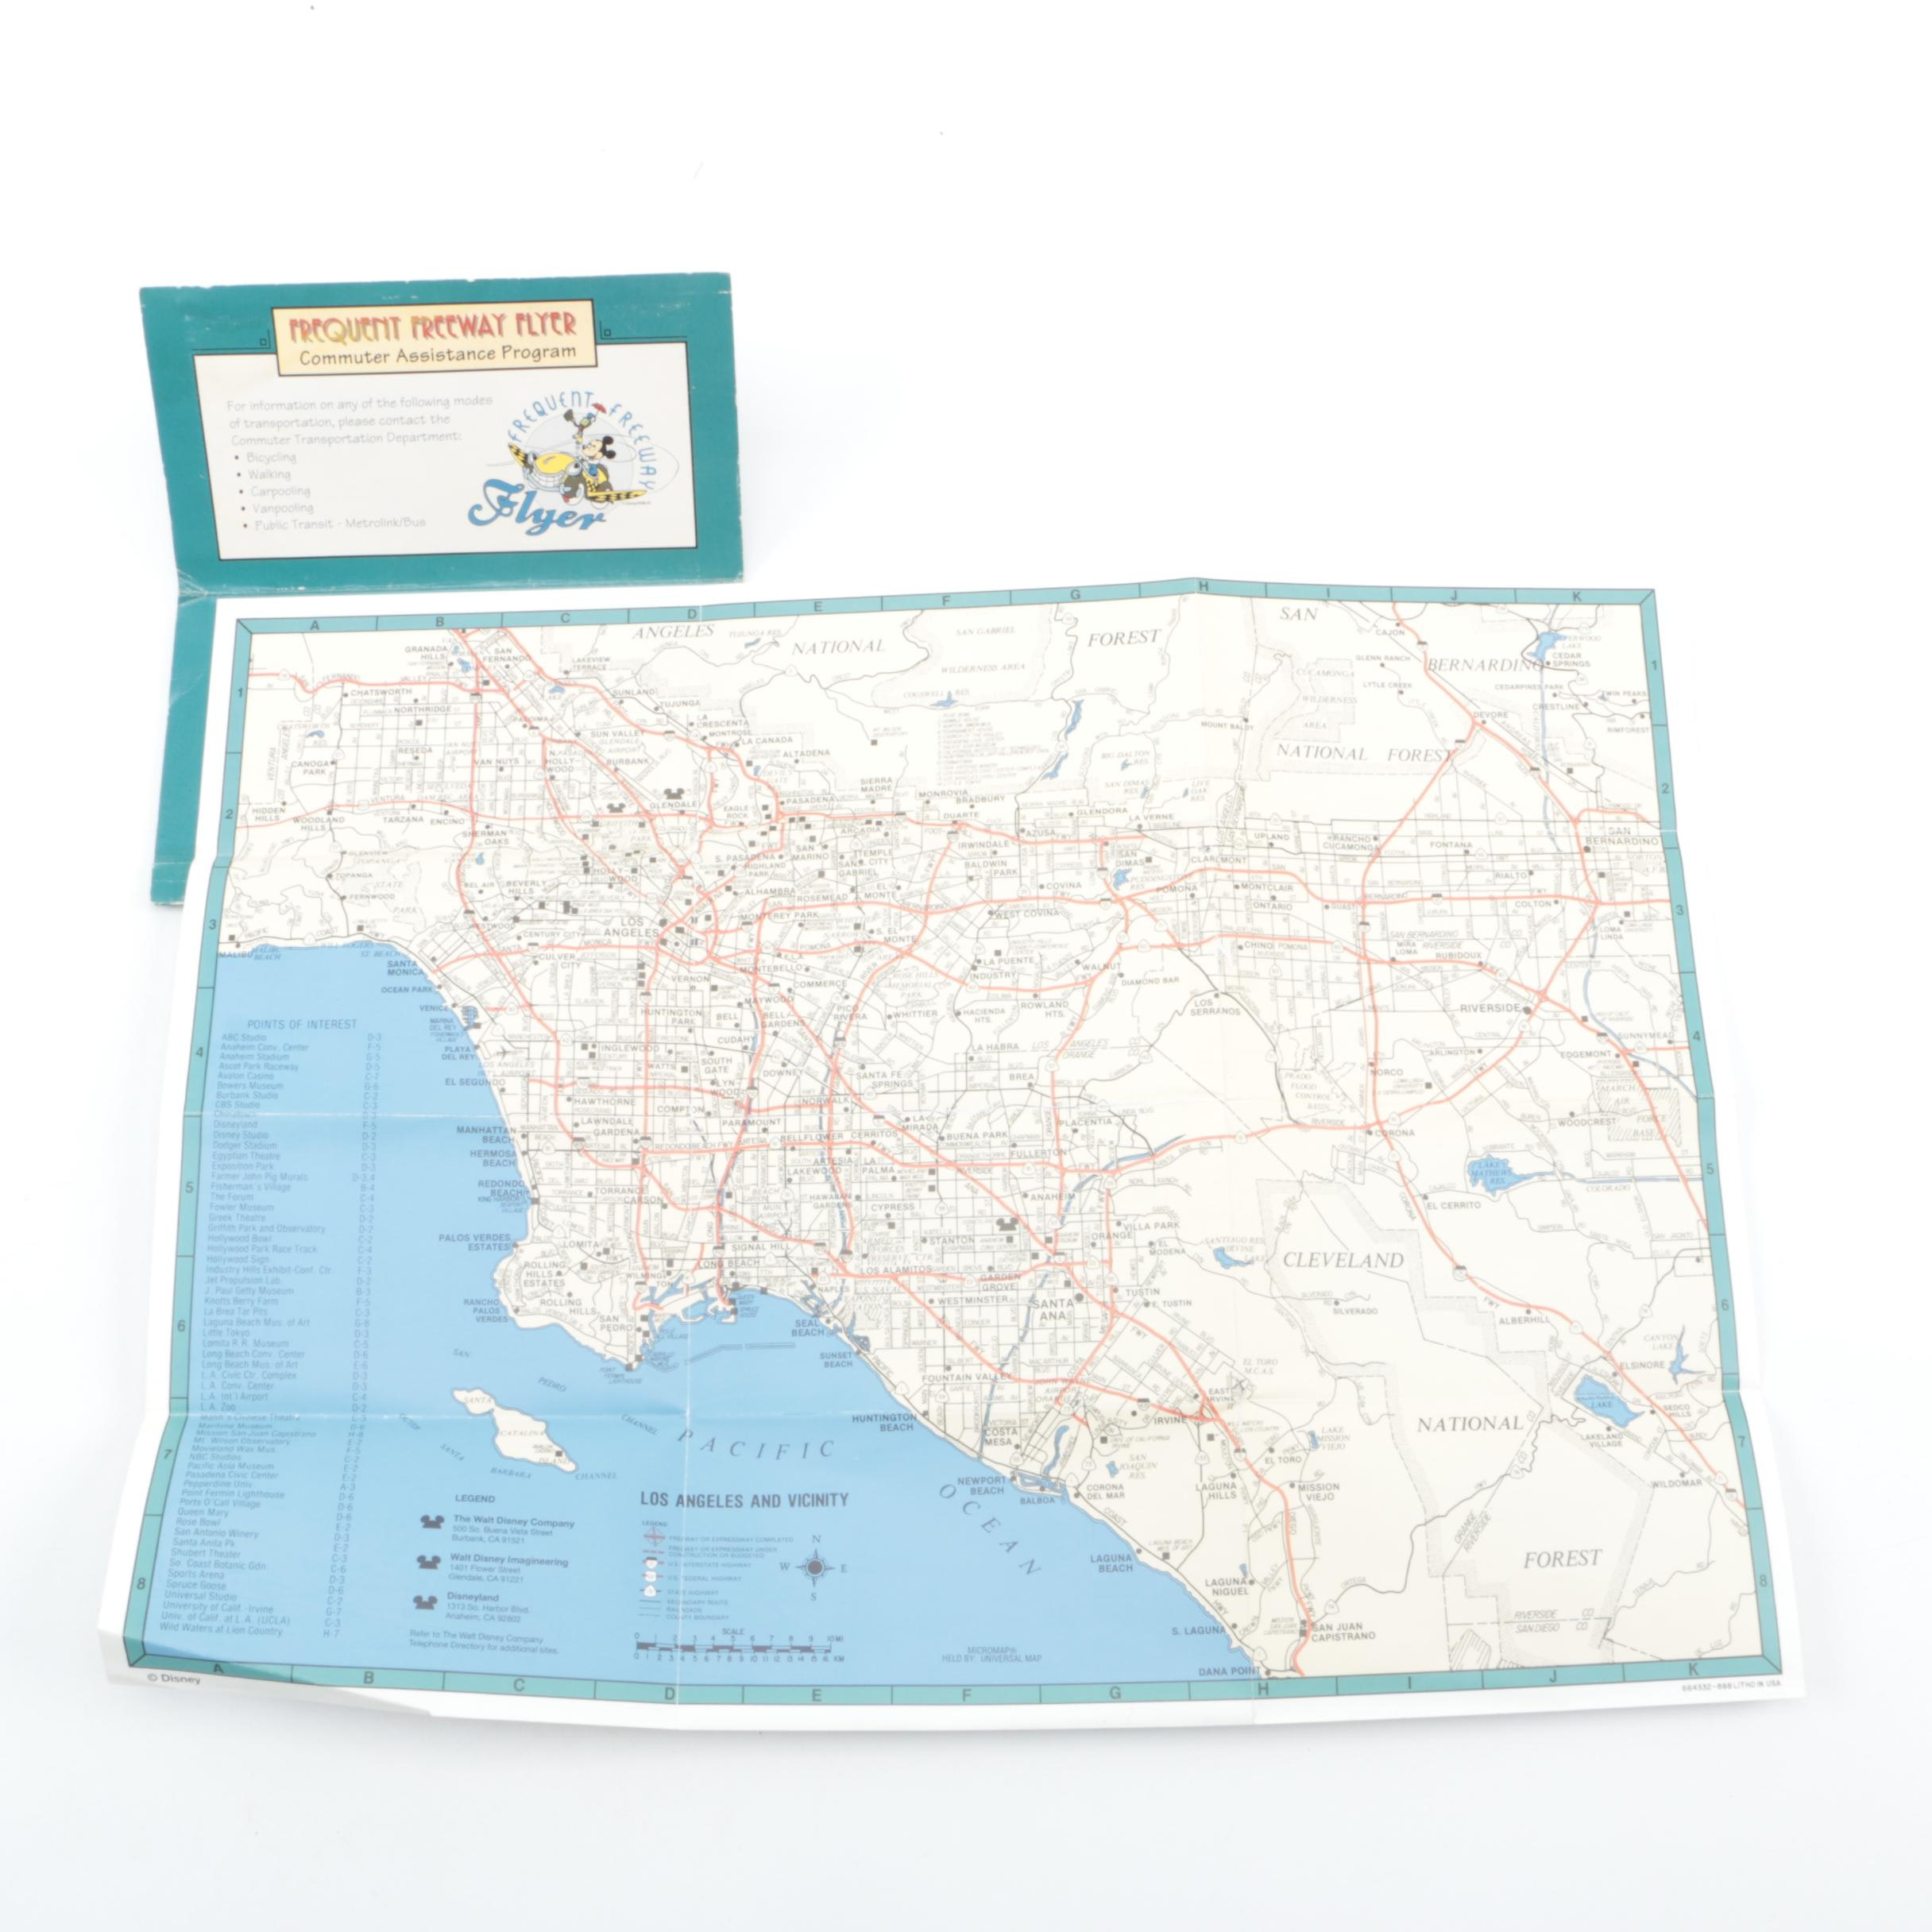 """Disney Frequent Freeway Flyer """"Minnie Map"""" of Southern California"""